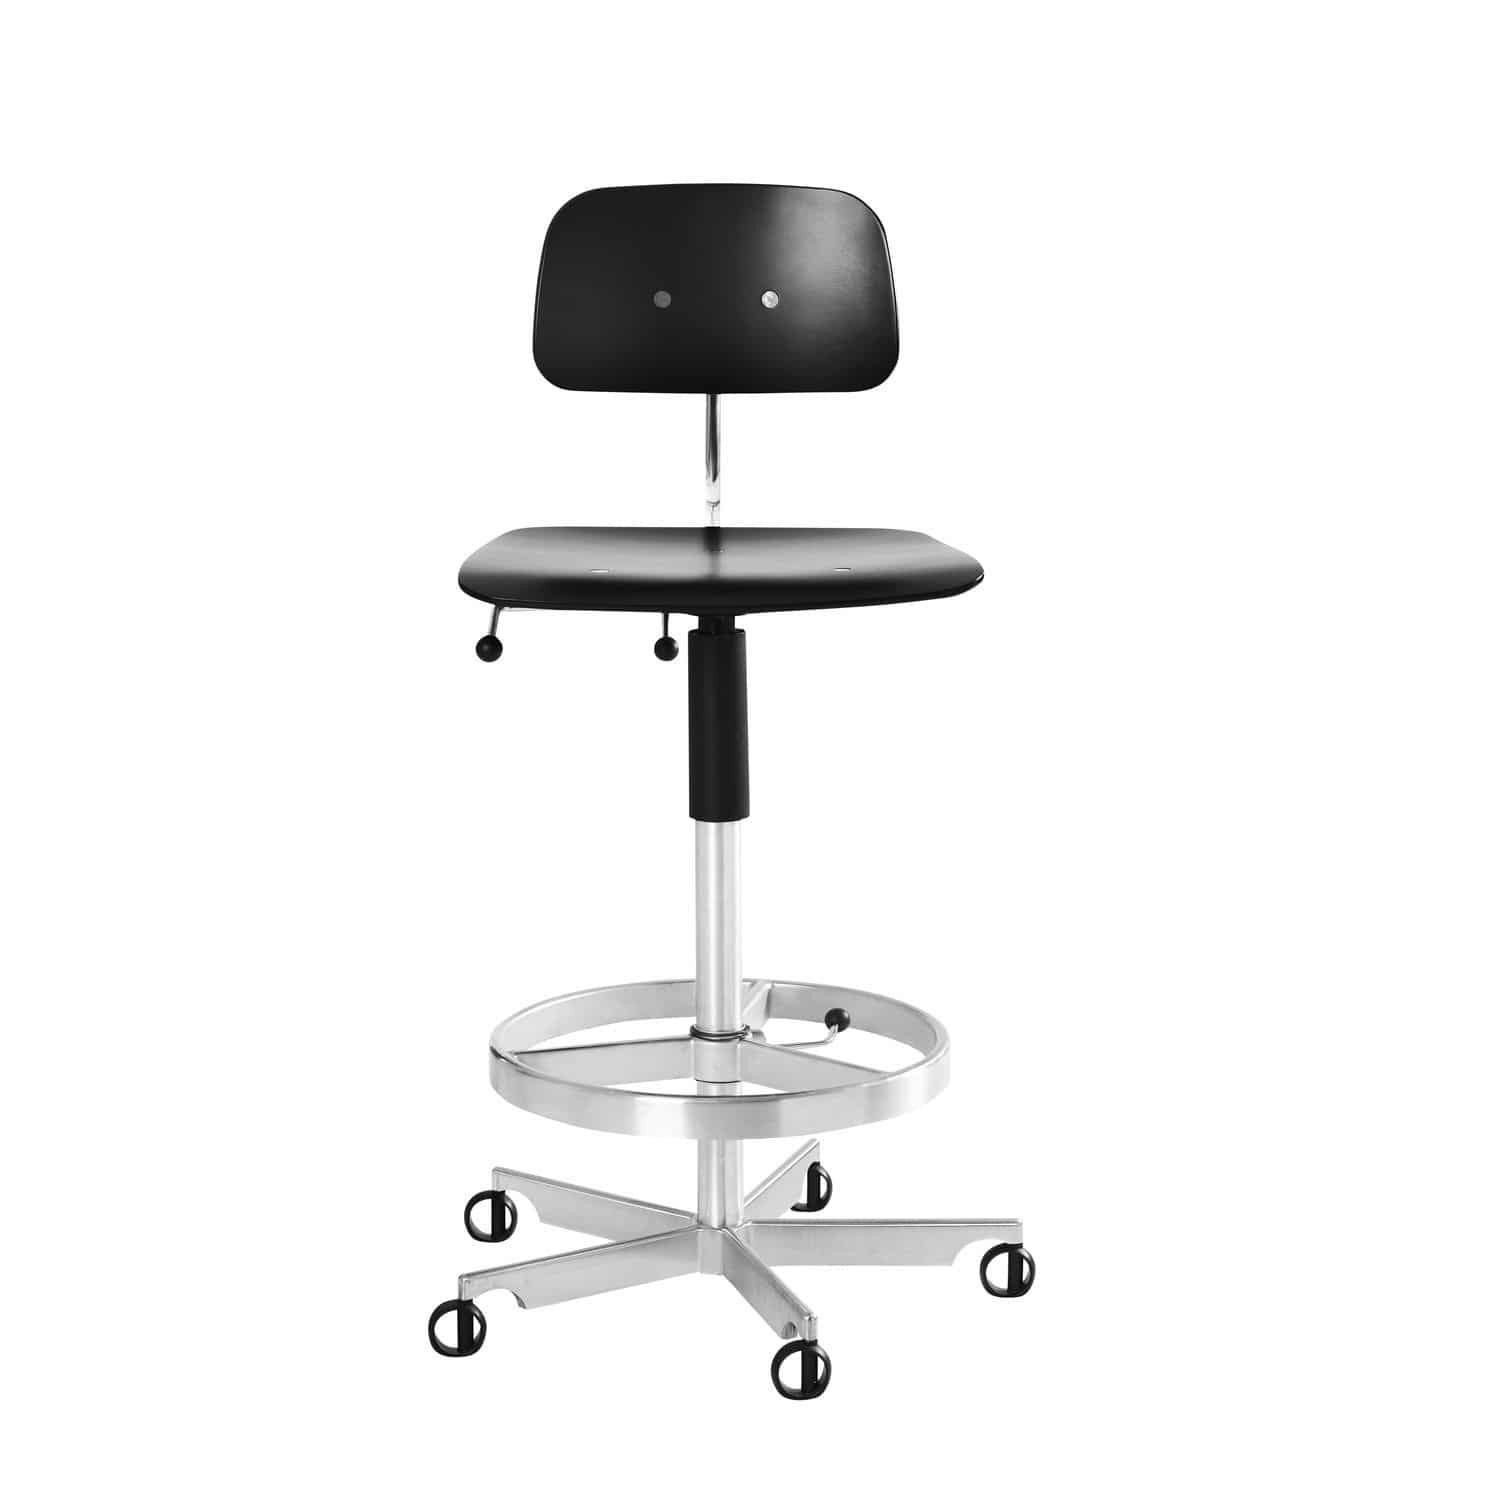 Kevi Chair Contemporary Bar Chair Swivel Adjustable Height Star Base